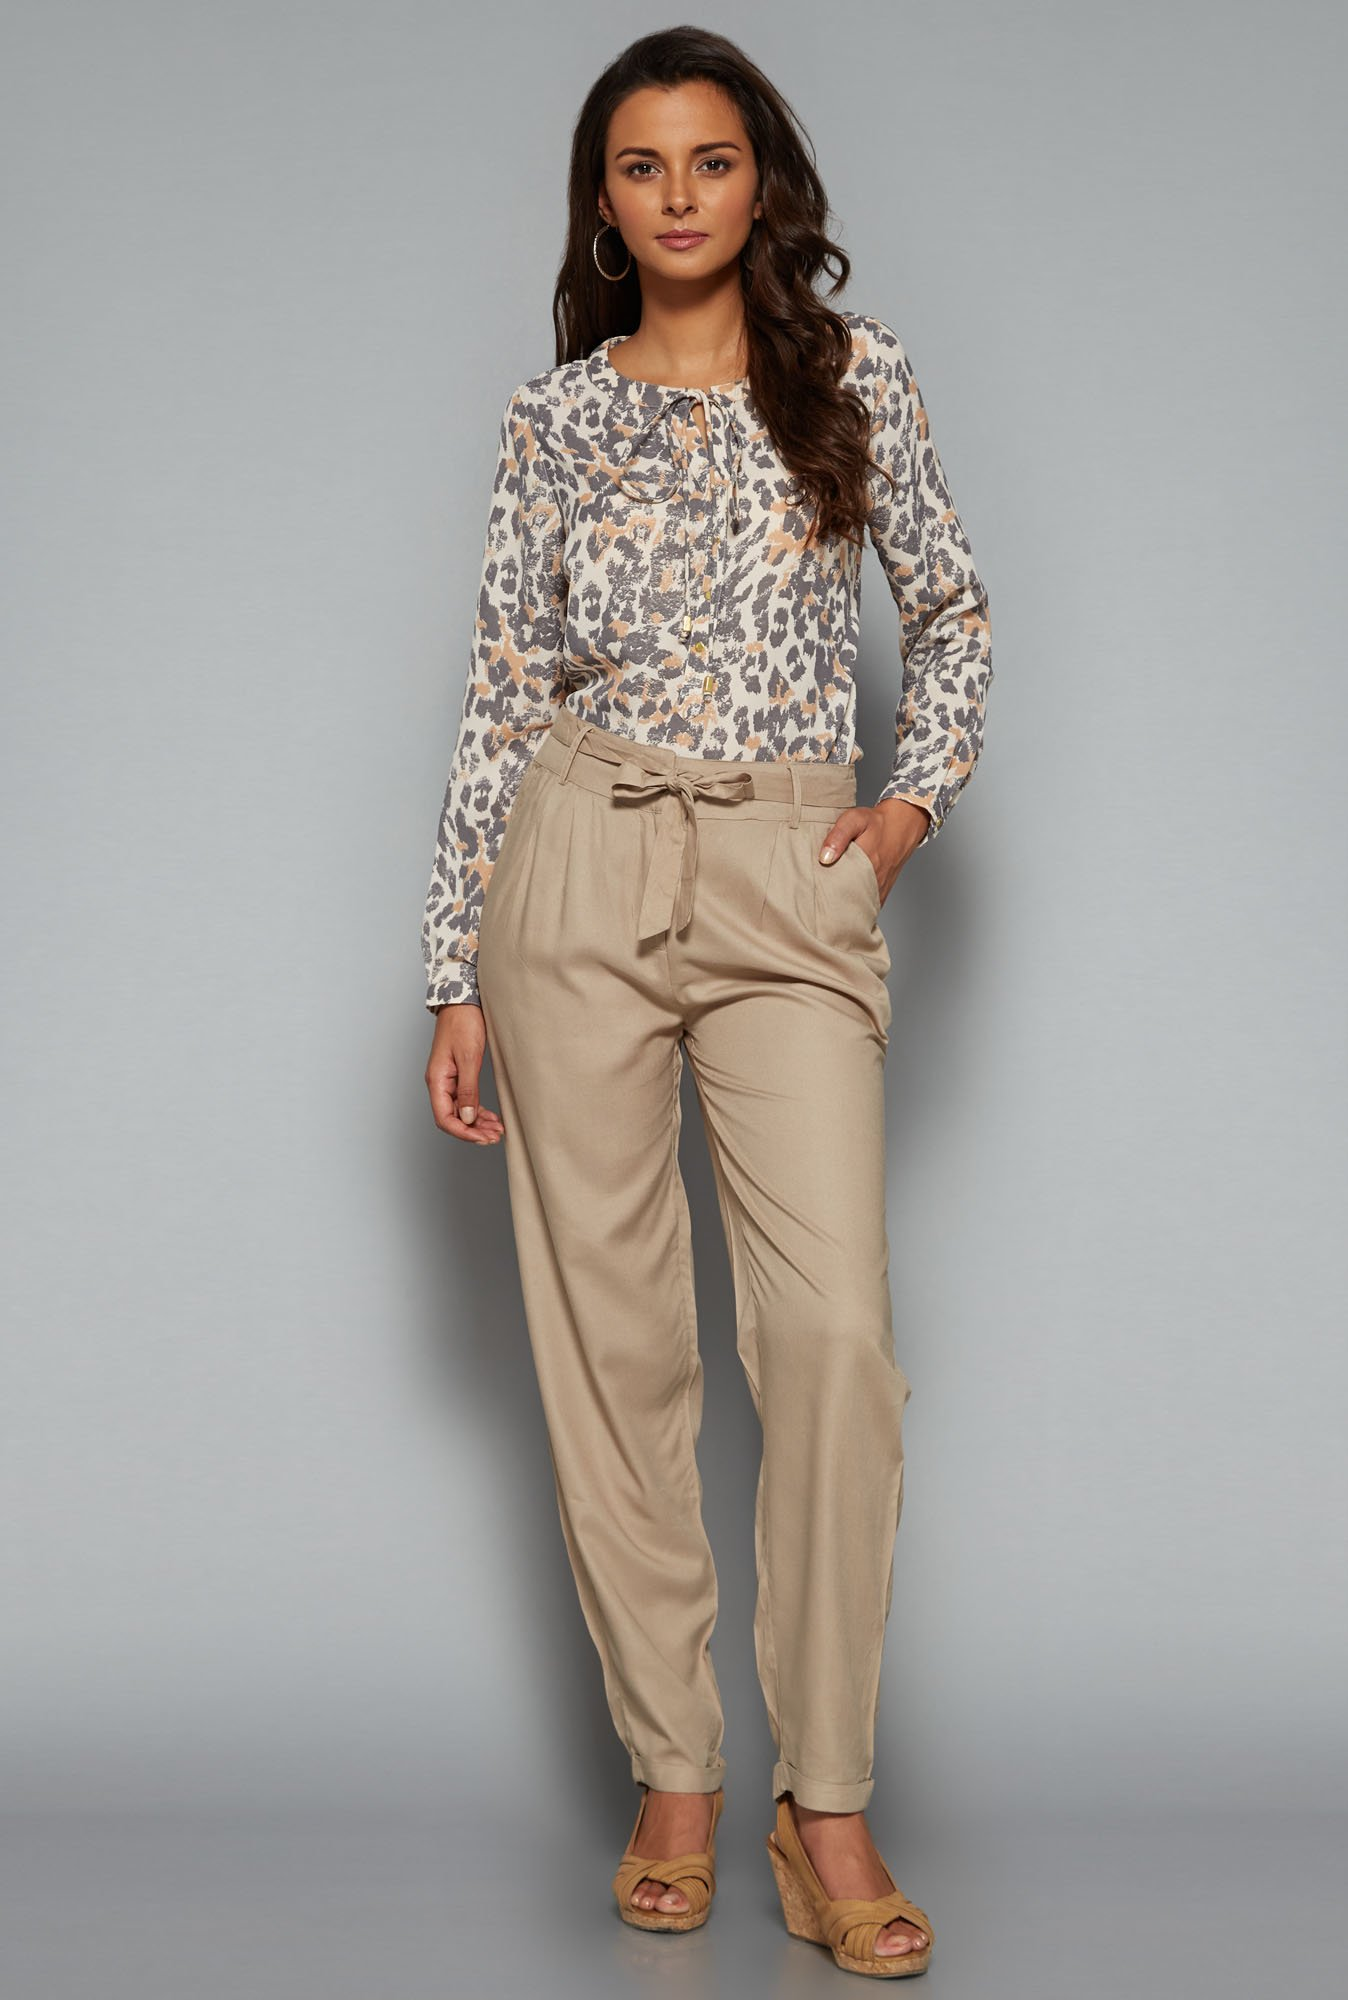 LOV Brown Cleo Animal Printed Blouse